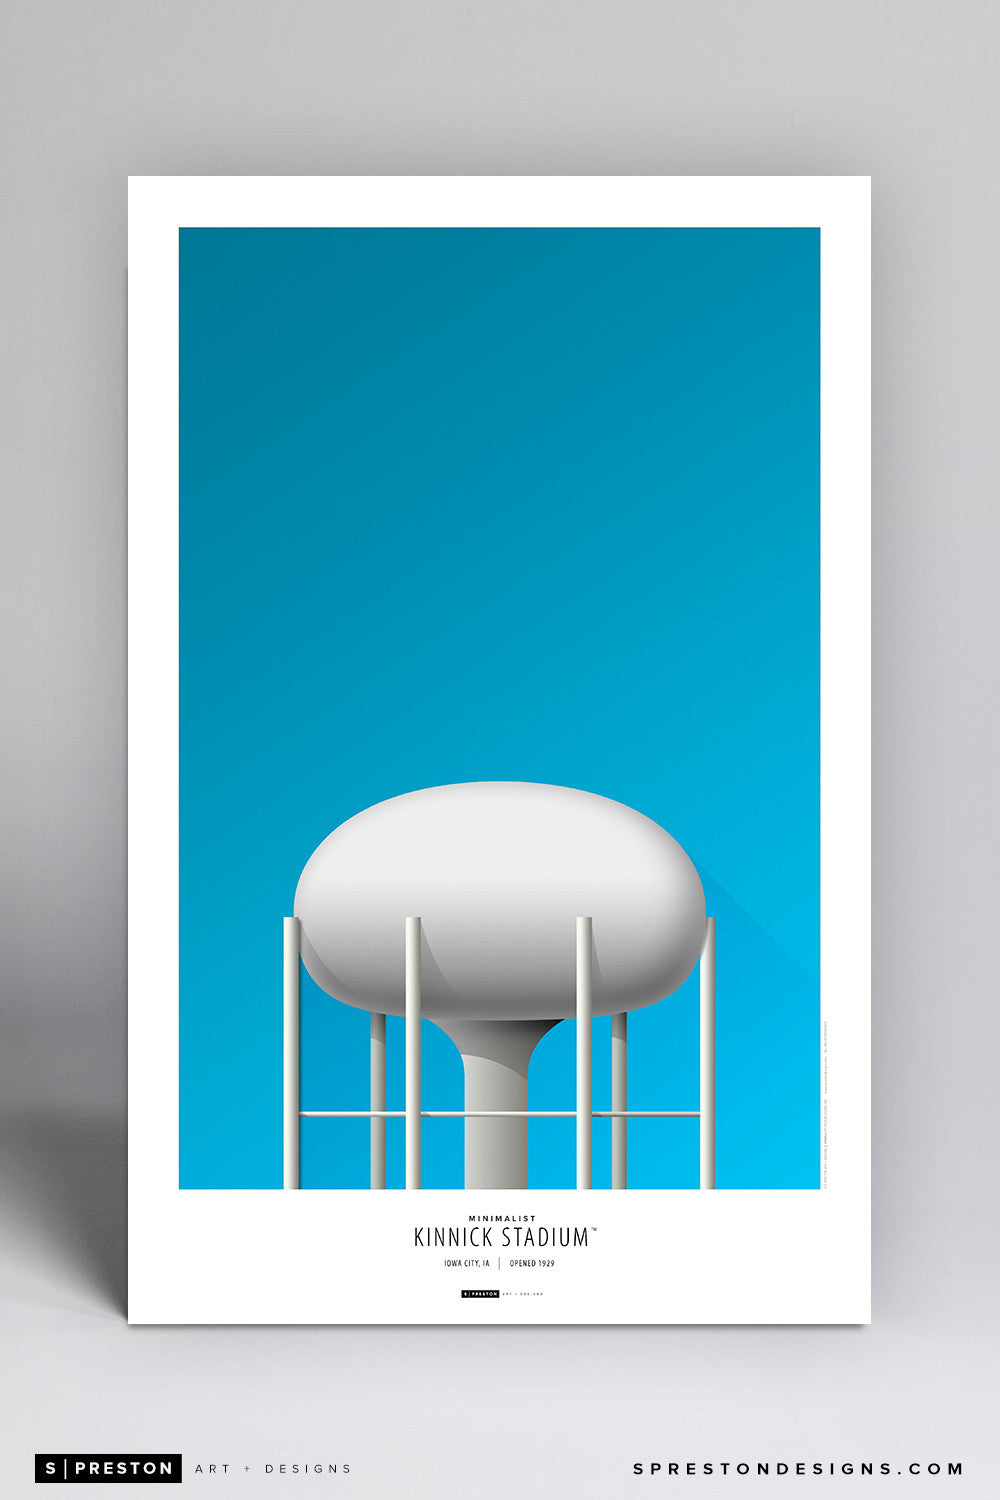 Minimalist Kinnick Stadium Poster Print University of Iowa - S Preston